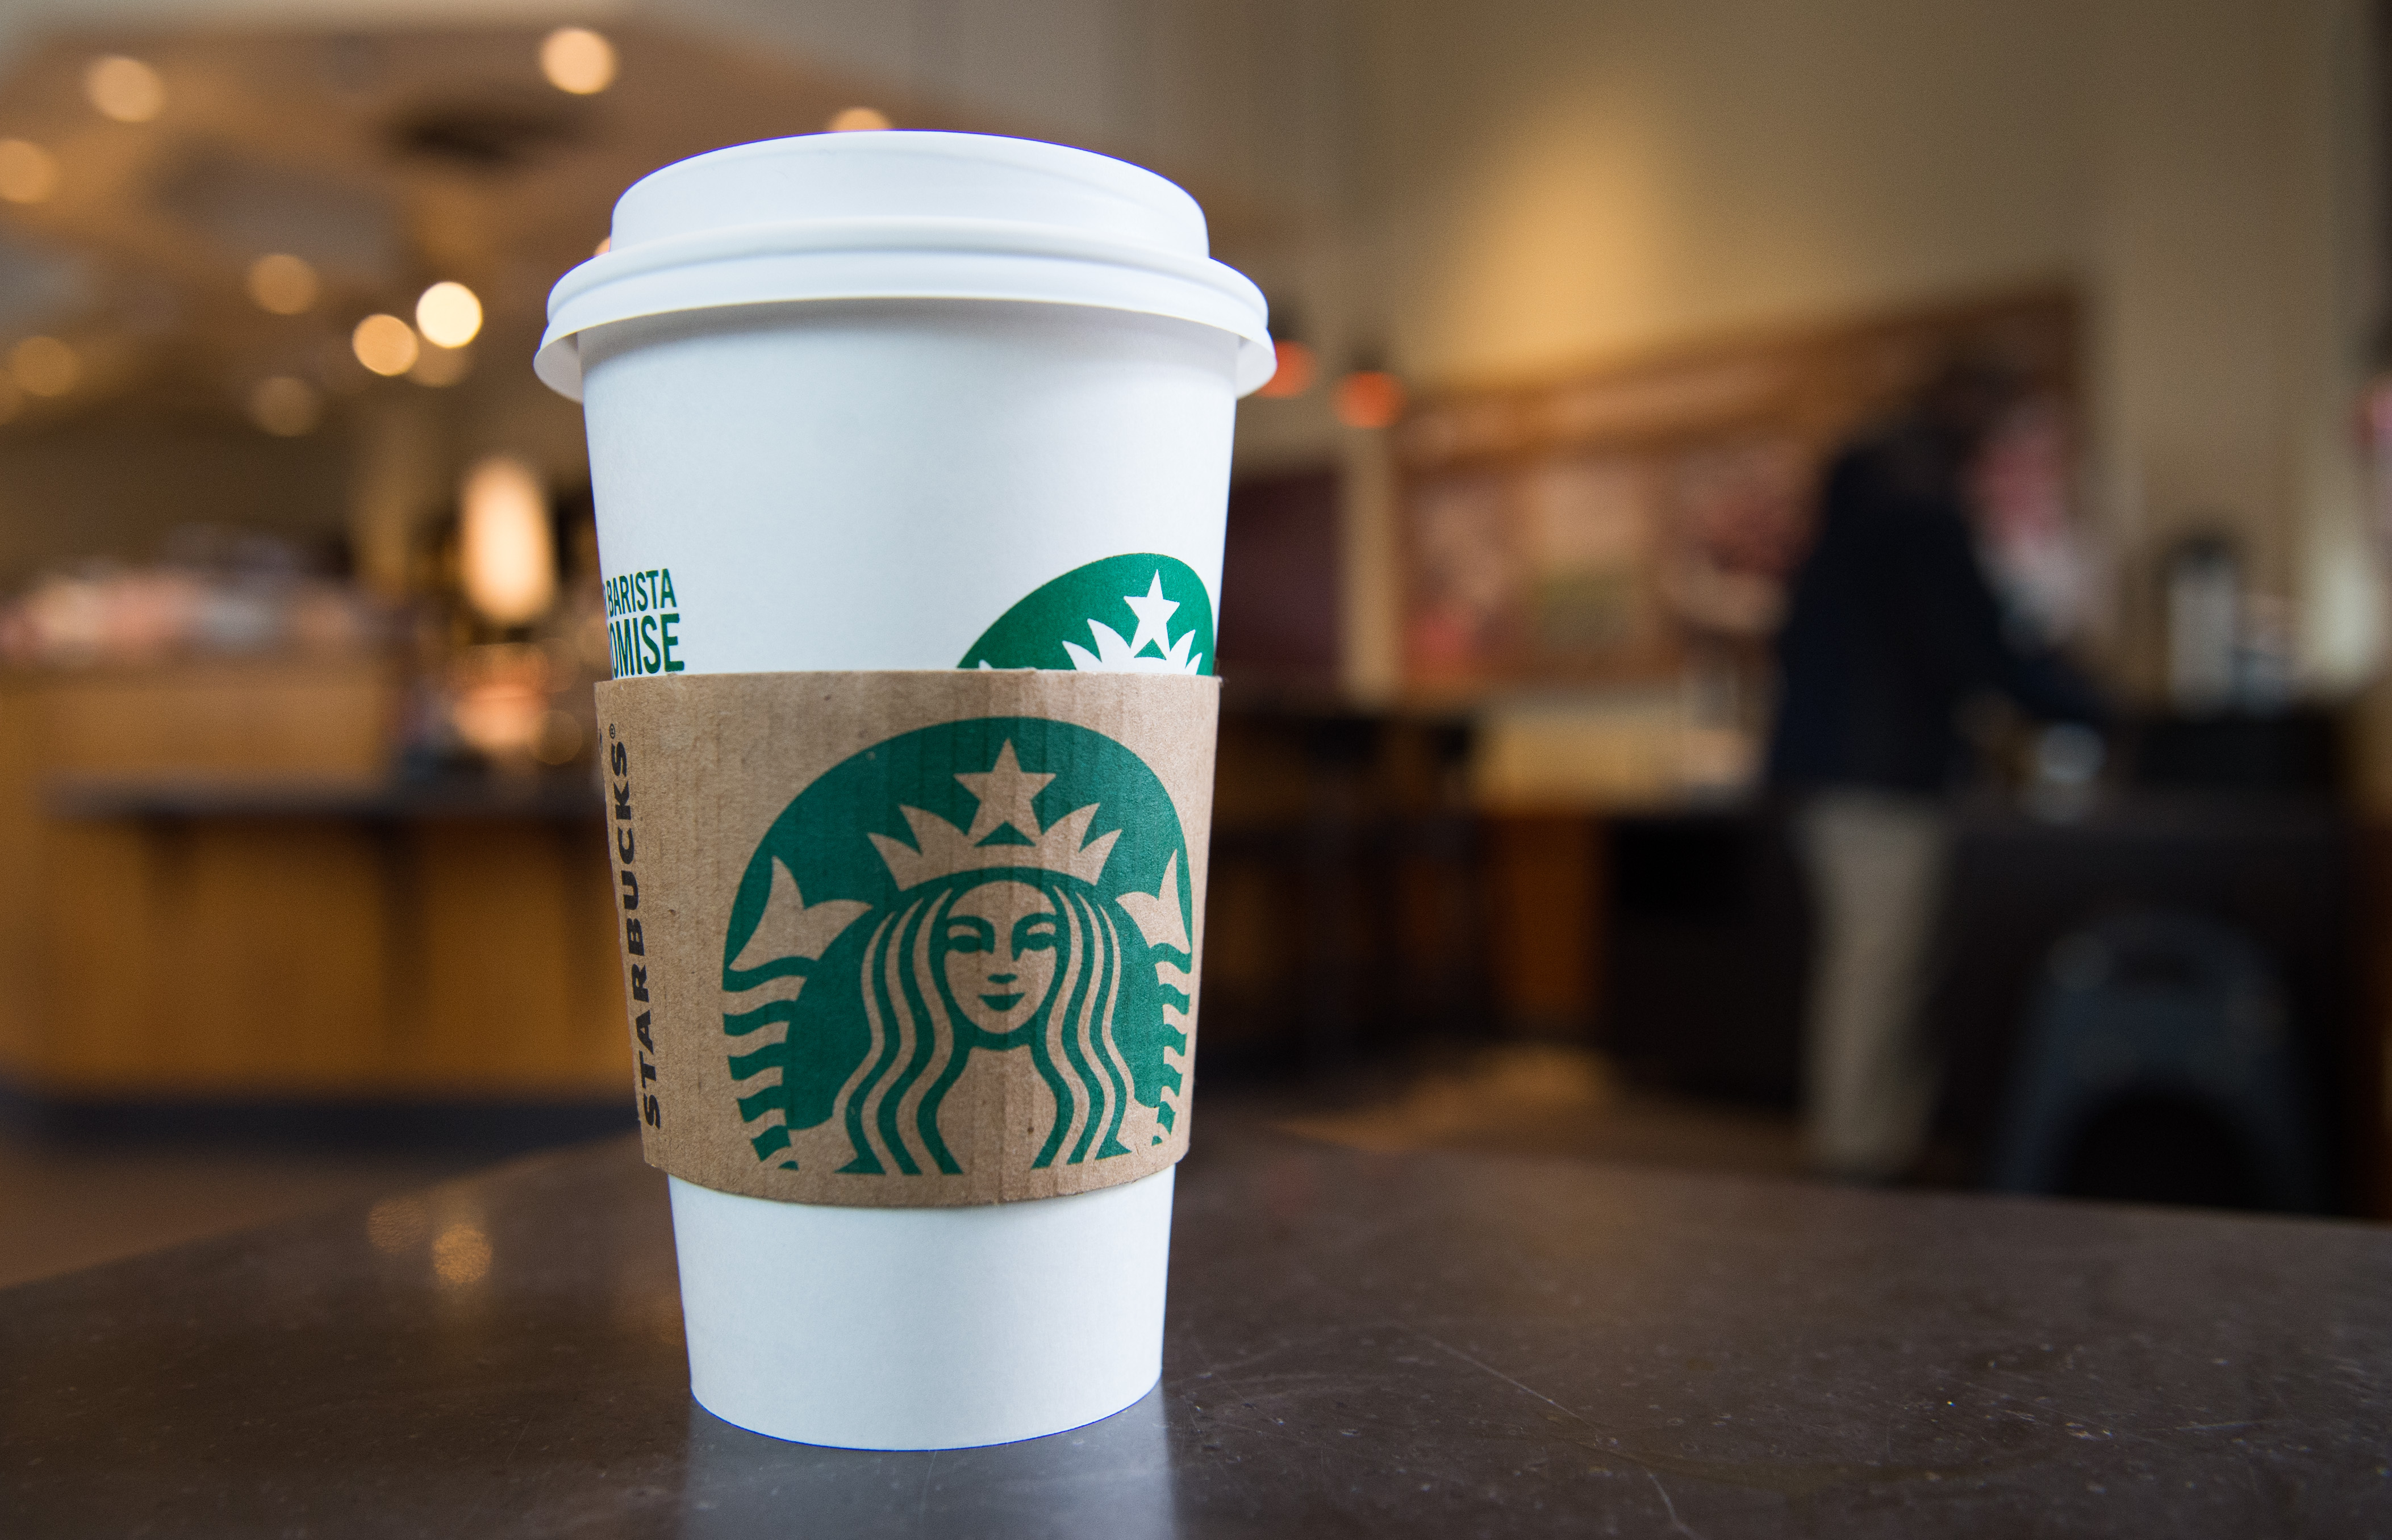 Starbucks rolls out coffee delivery service in UK